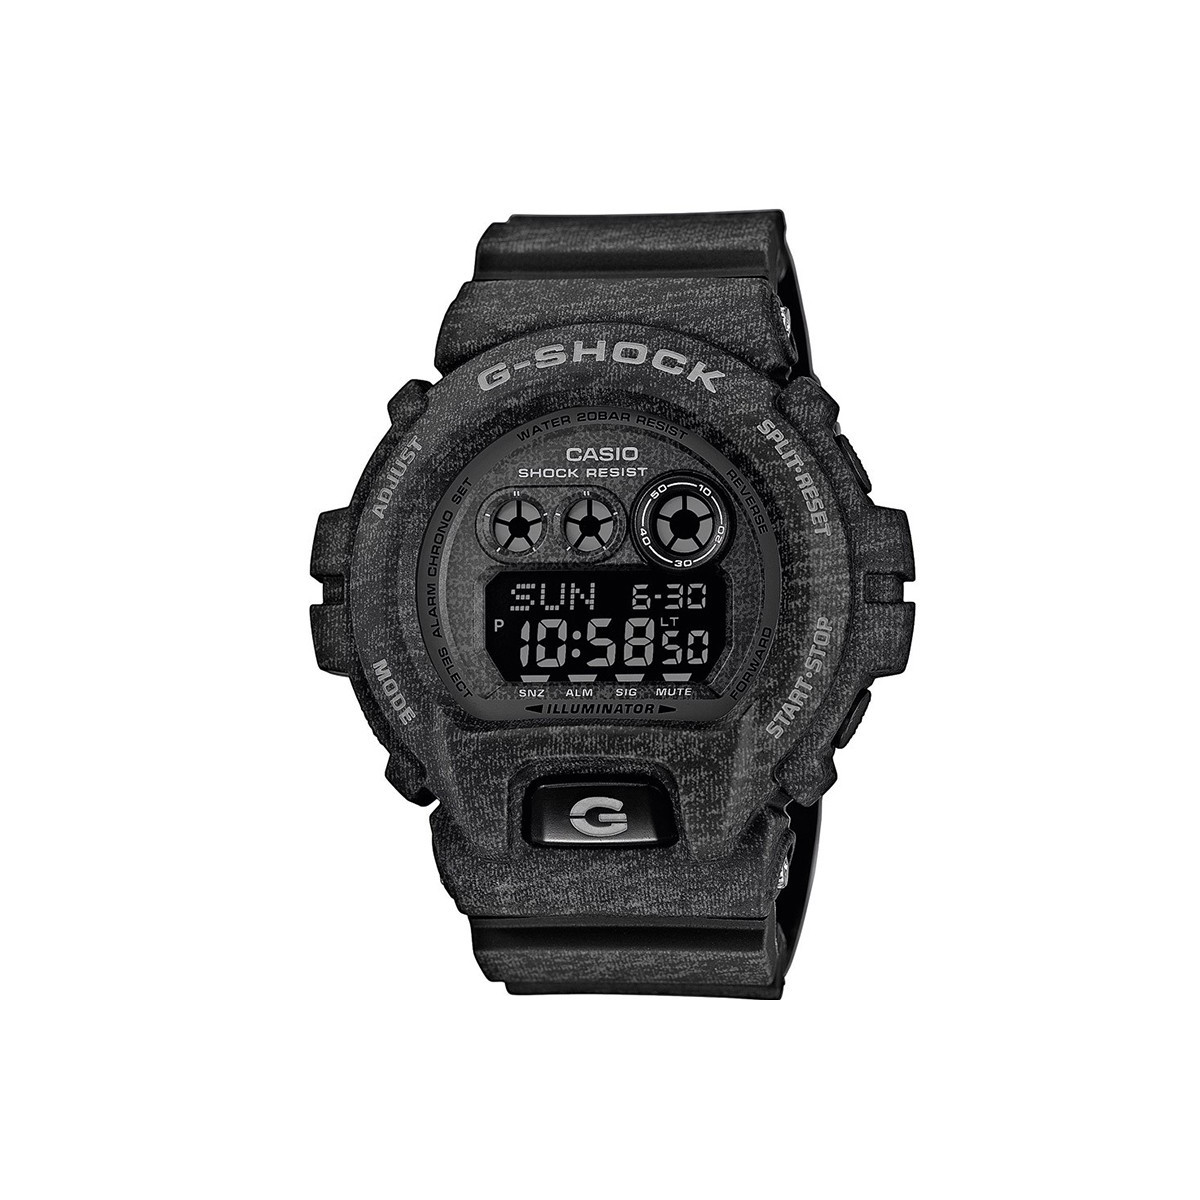 montre casio g shock 57 5 mm gd x6900ht 1er mes bijoux fr. Black Bedroom Furniture Sets. Home Design Ideas